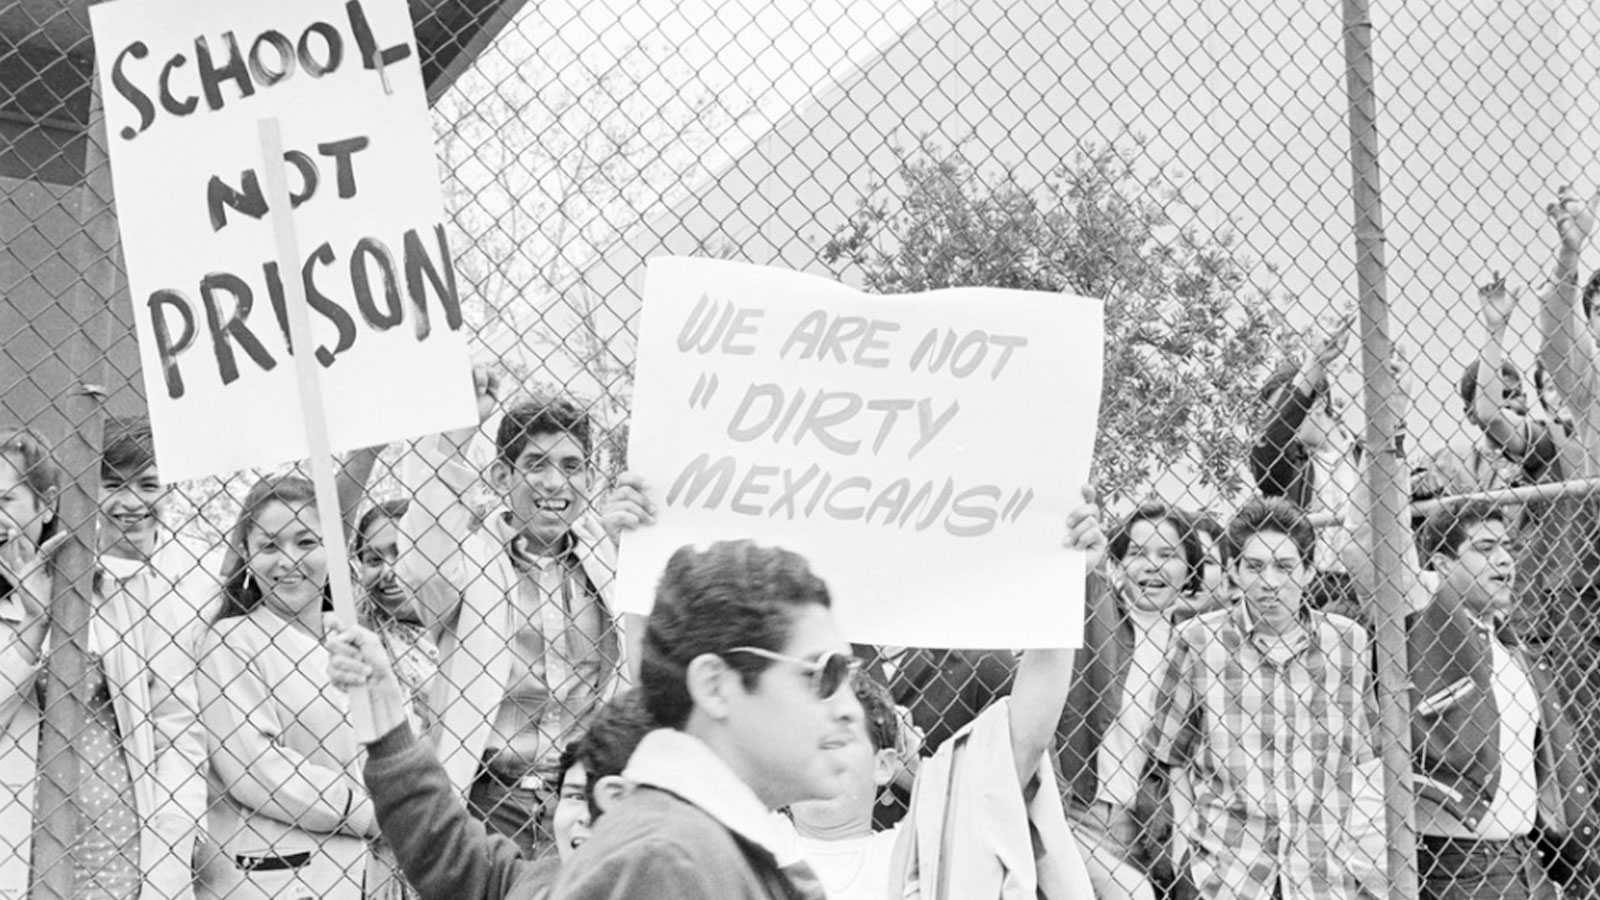 """Cal State LA students during the walkouts holding protest signs. One reading """"We are not 'Dirty Mexicans'"""" and the other reading """"School Not Prison""""."""